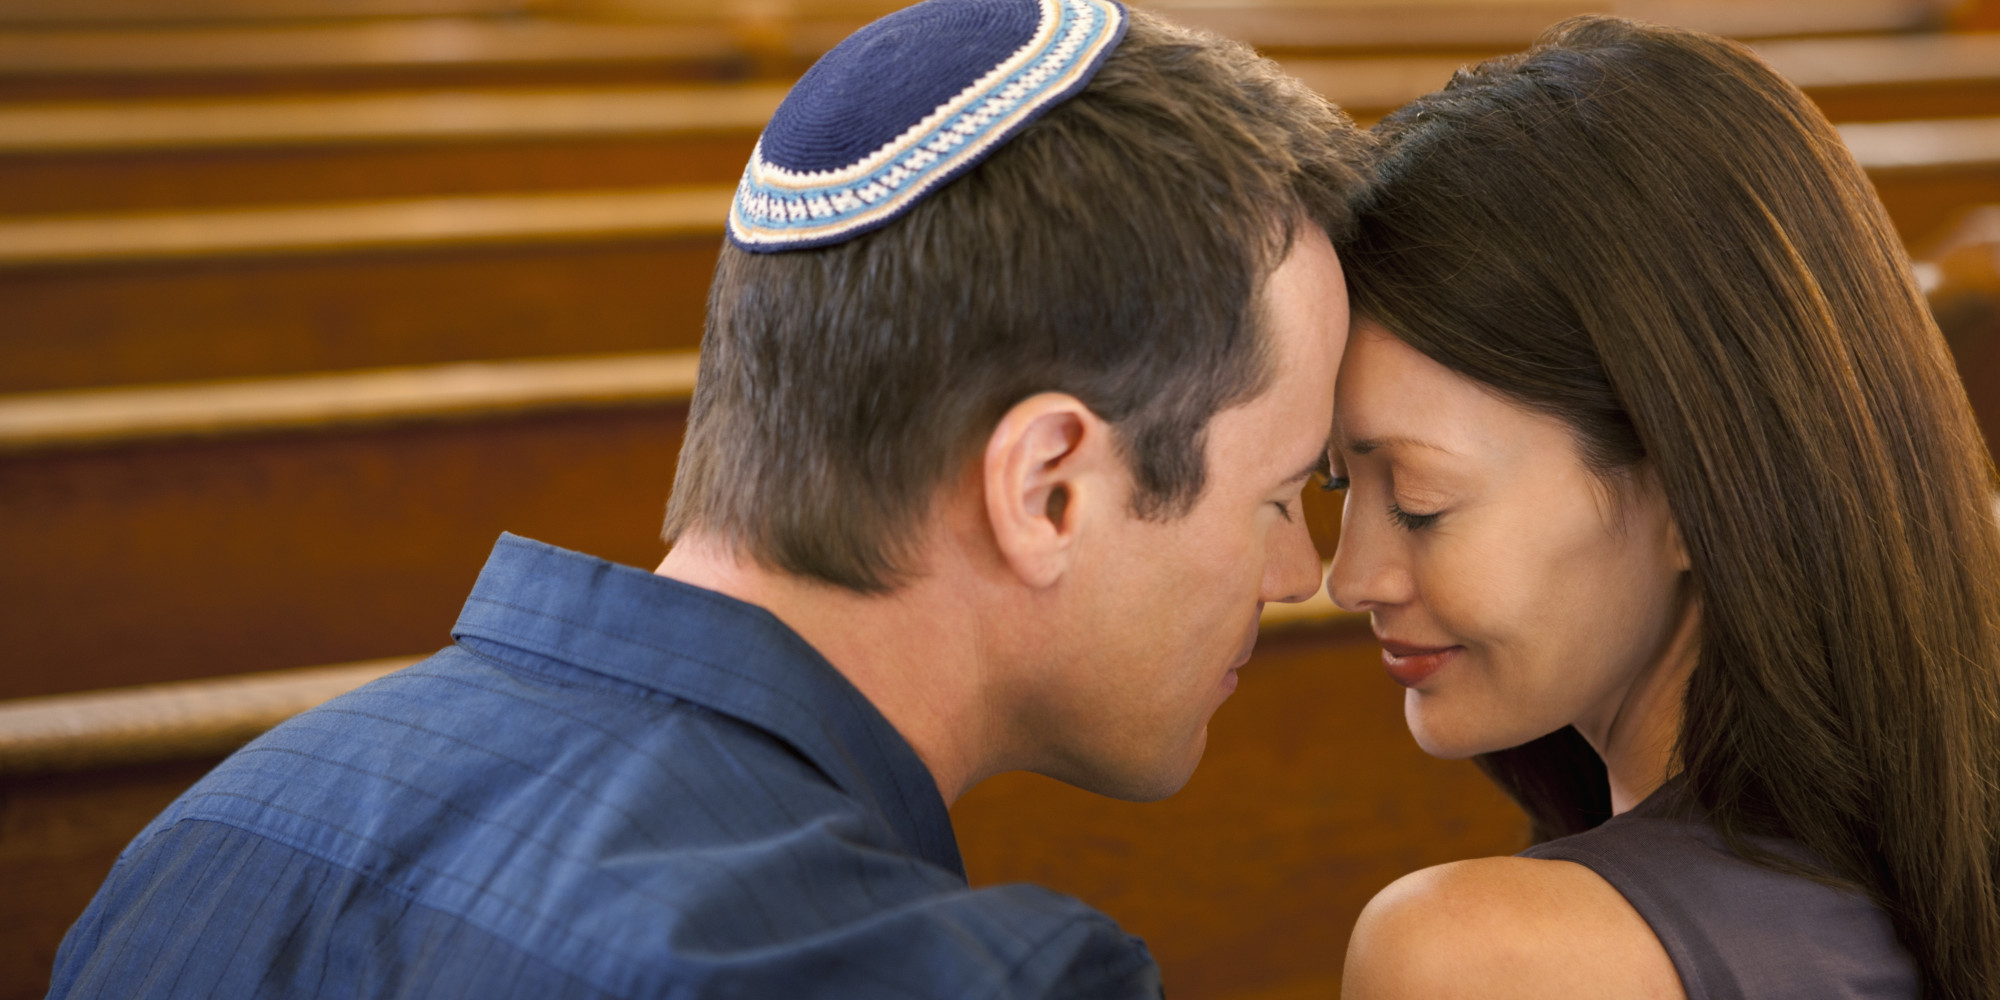 Guide to dating a jewish guy